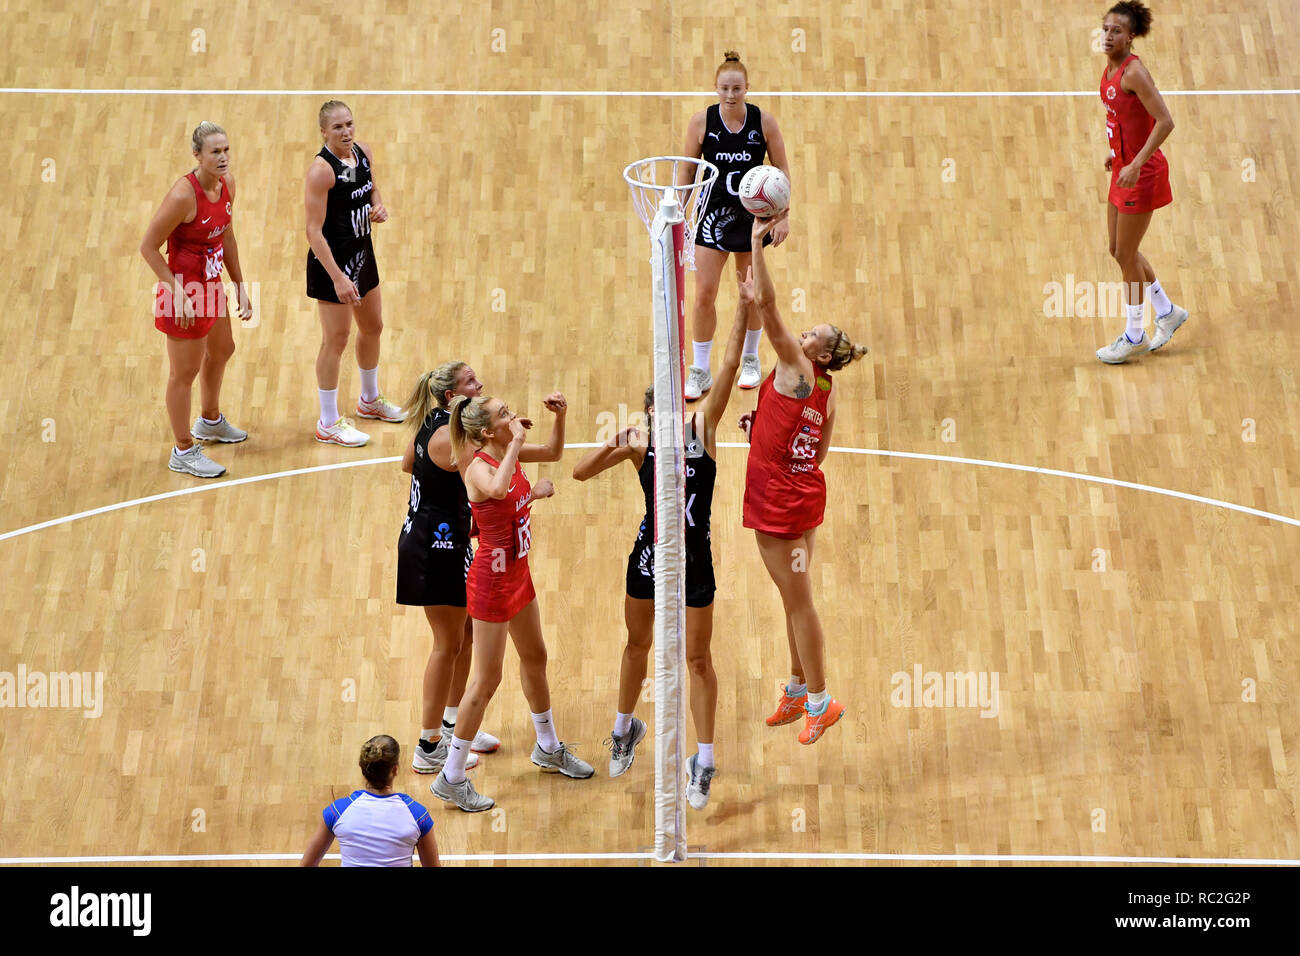 England Roses' Jo Harten scores during the Vitality Netball International Series match at the Echo Arena, Liverpool. - Stock Image